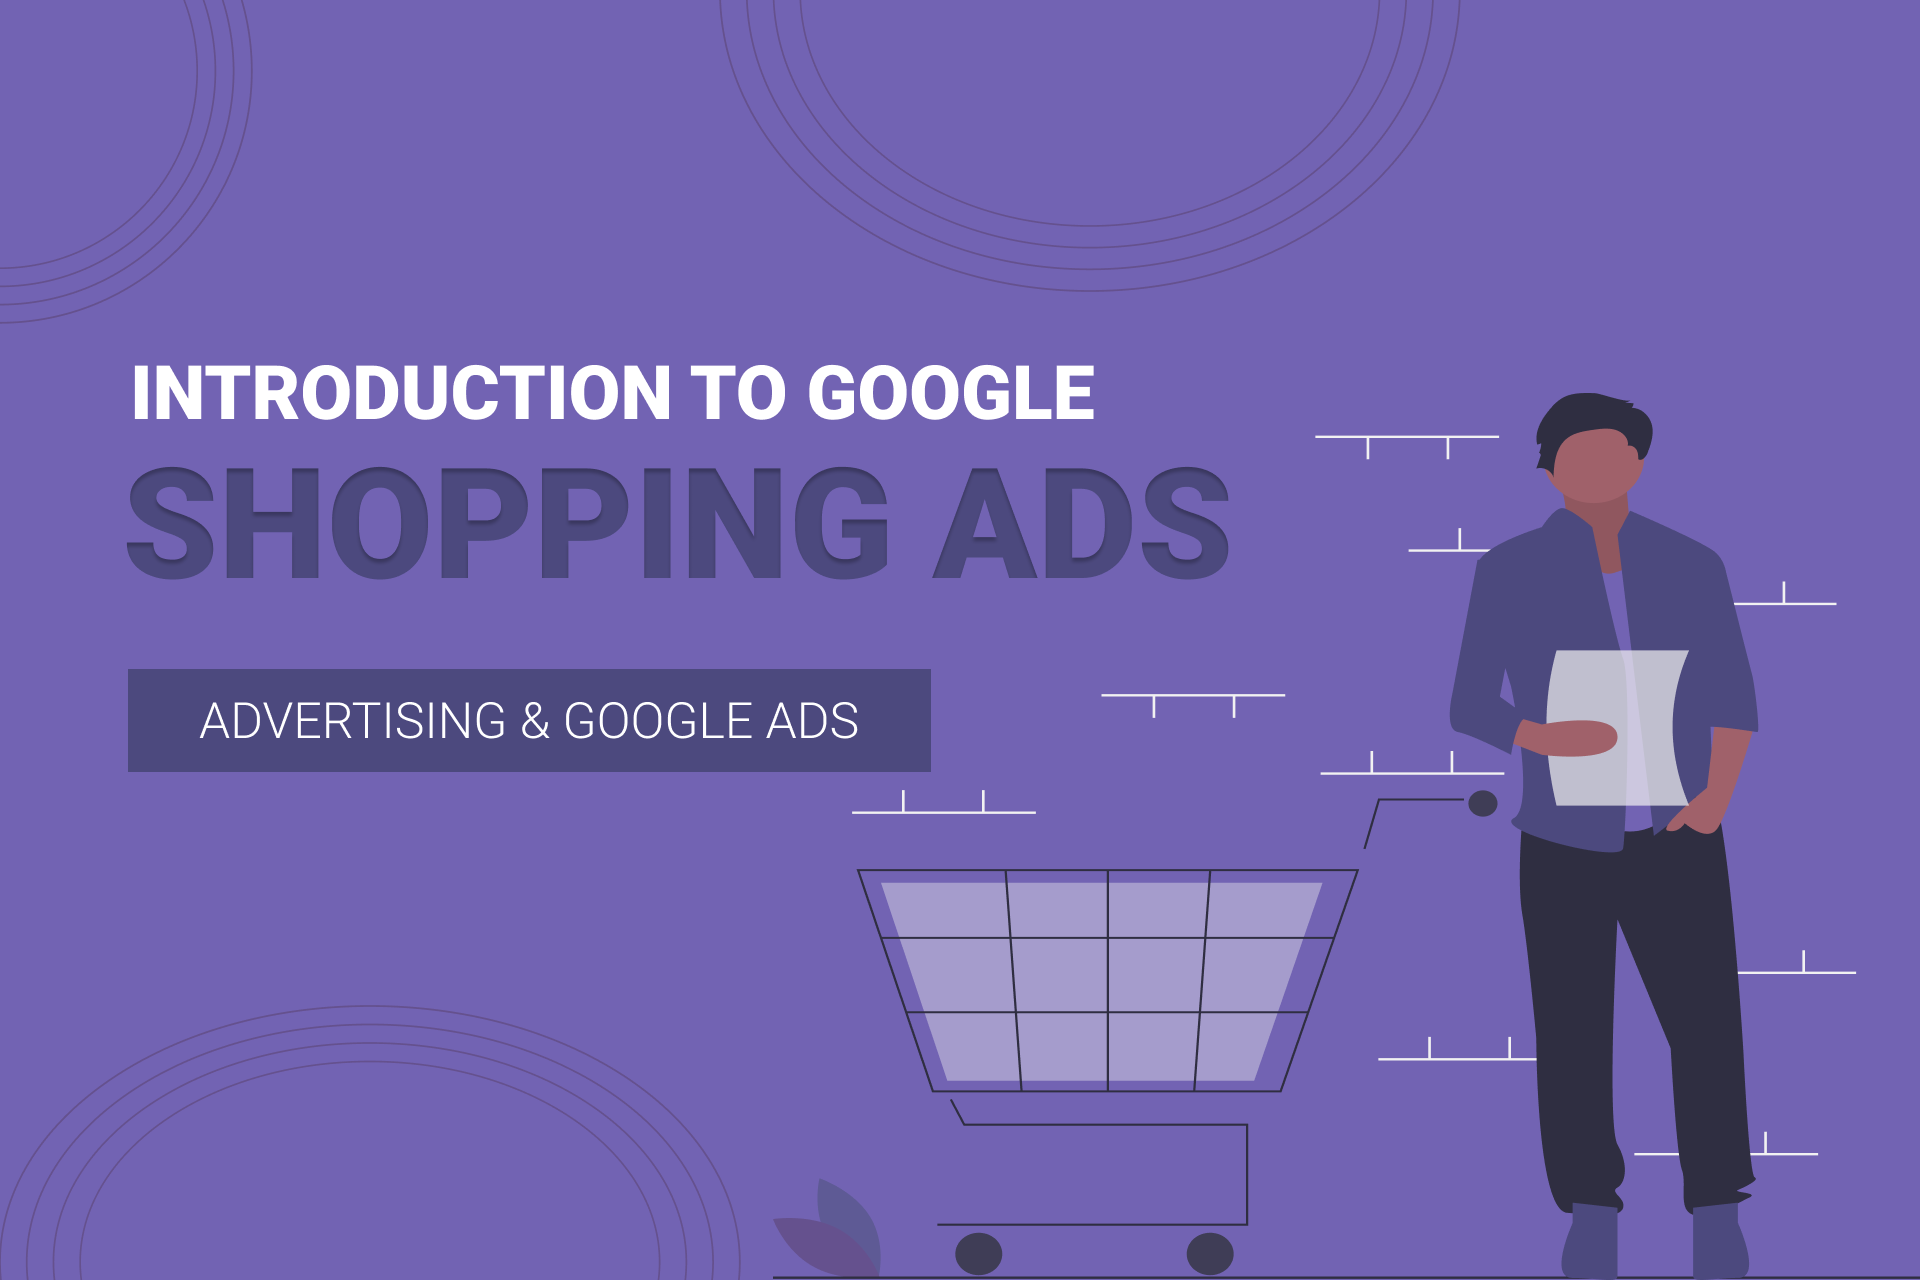 Introduction To Google Shopping Ads